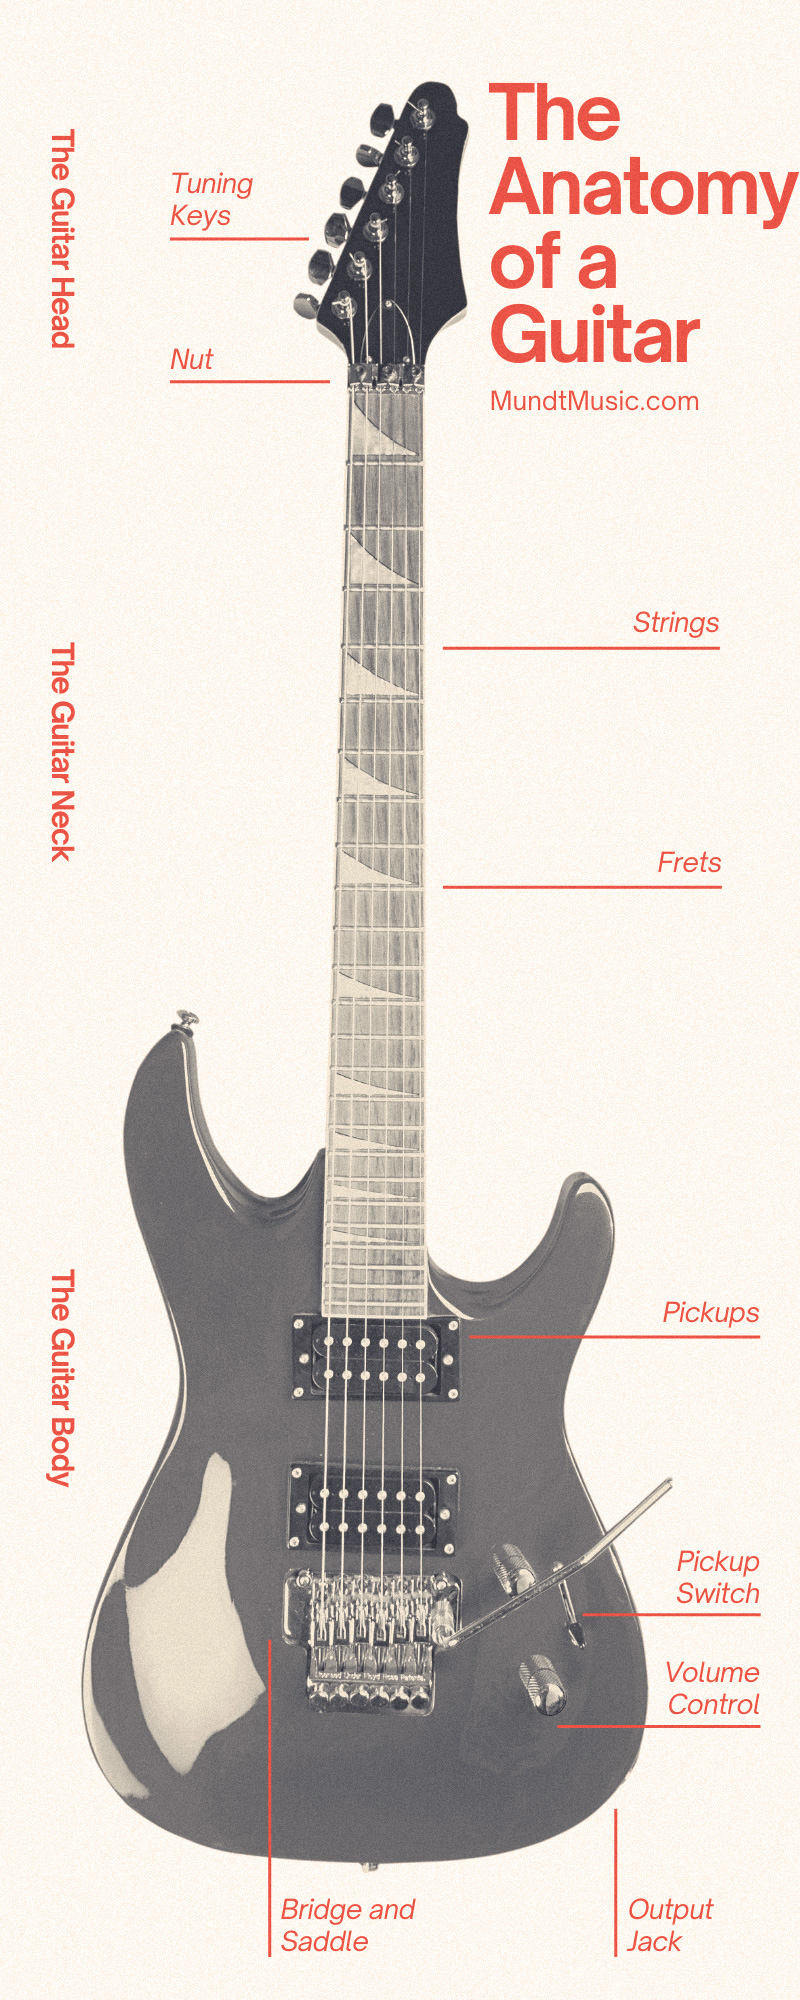 The Anatomy of a Guitar